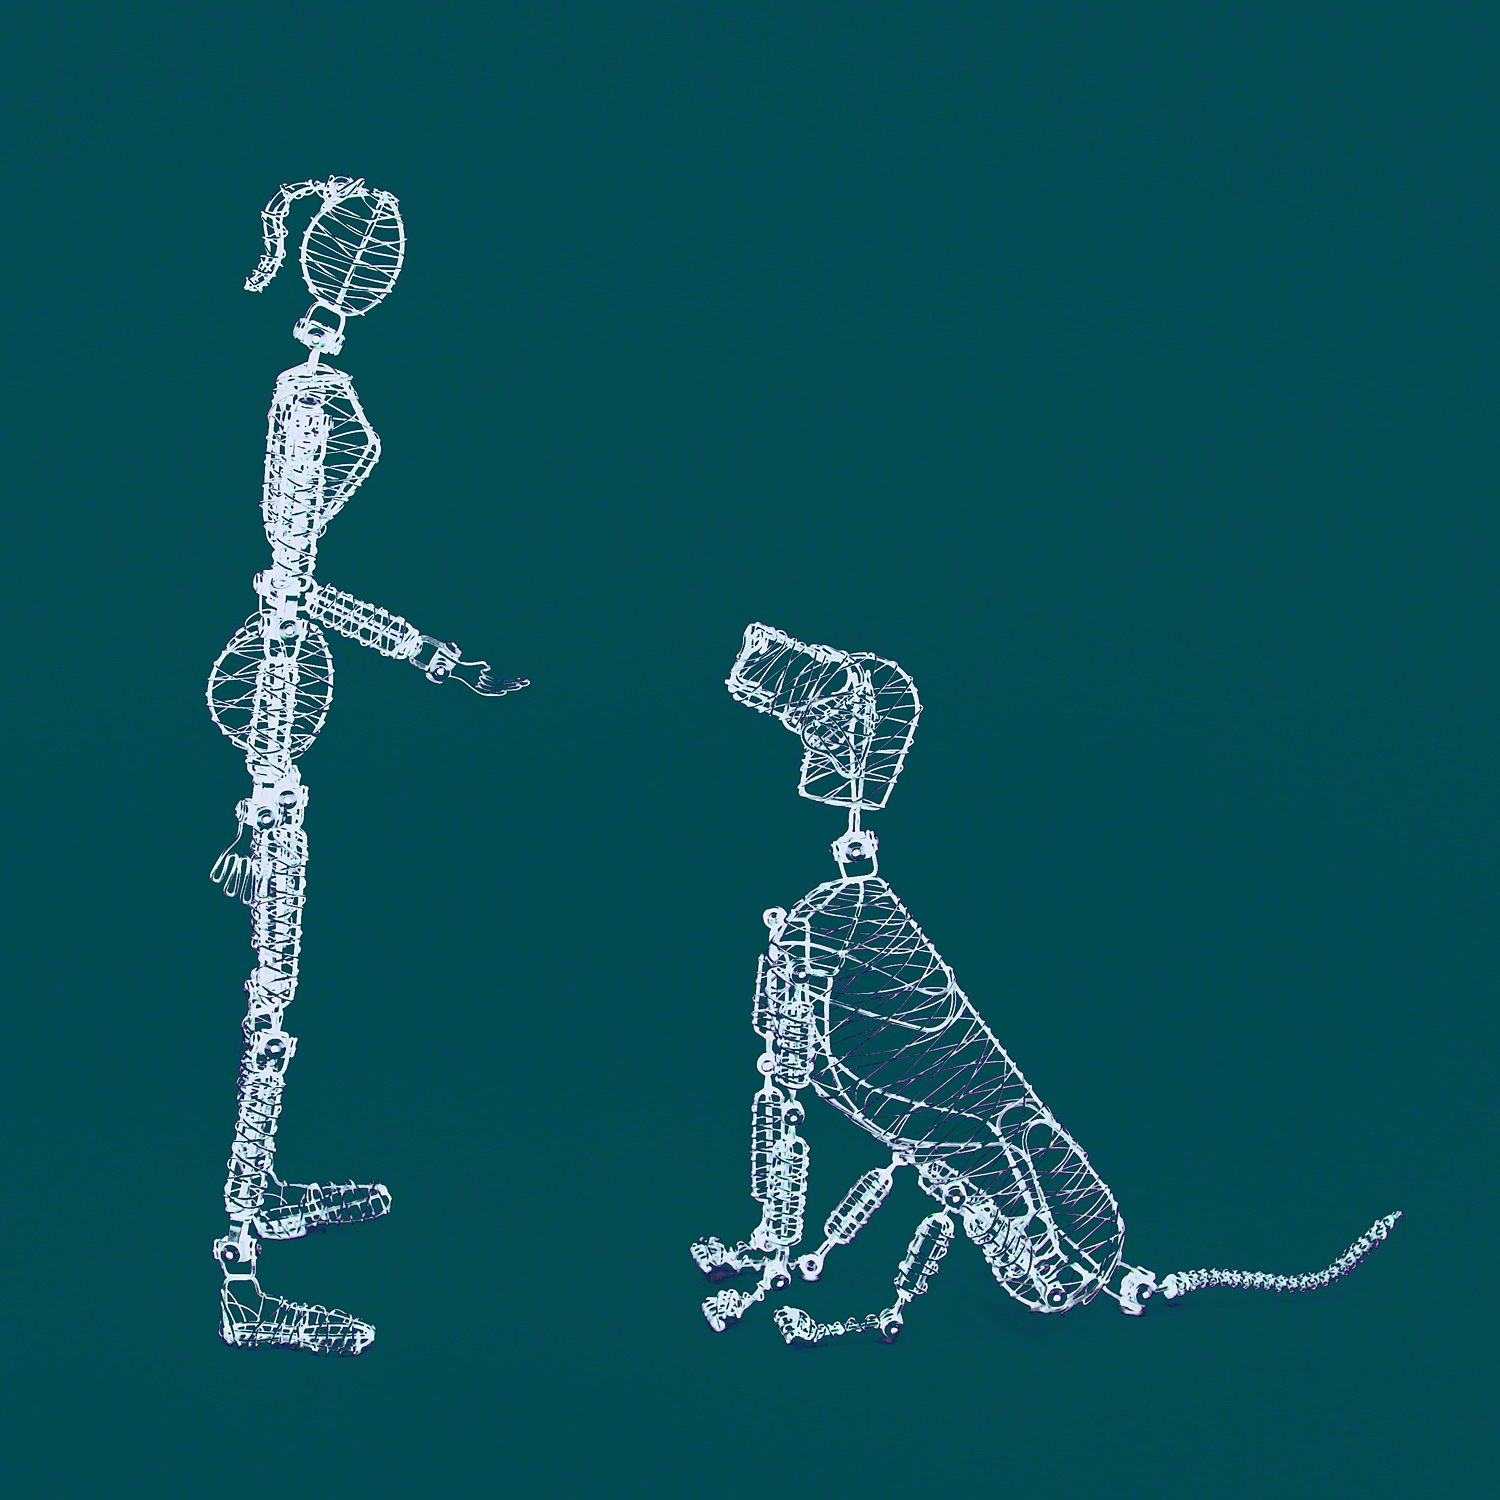 Basic Manners & Obedience Training - Is your dog jumping all over visitors, pulling like mad on lead, not listening to you, barking like crazy at the doorbell, grabbing food at home or in the street or disappearing with no recall at the park? We can resolve these issues with positive, smart teaching & learning lessons that are fun for you and your dog.